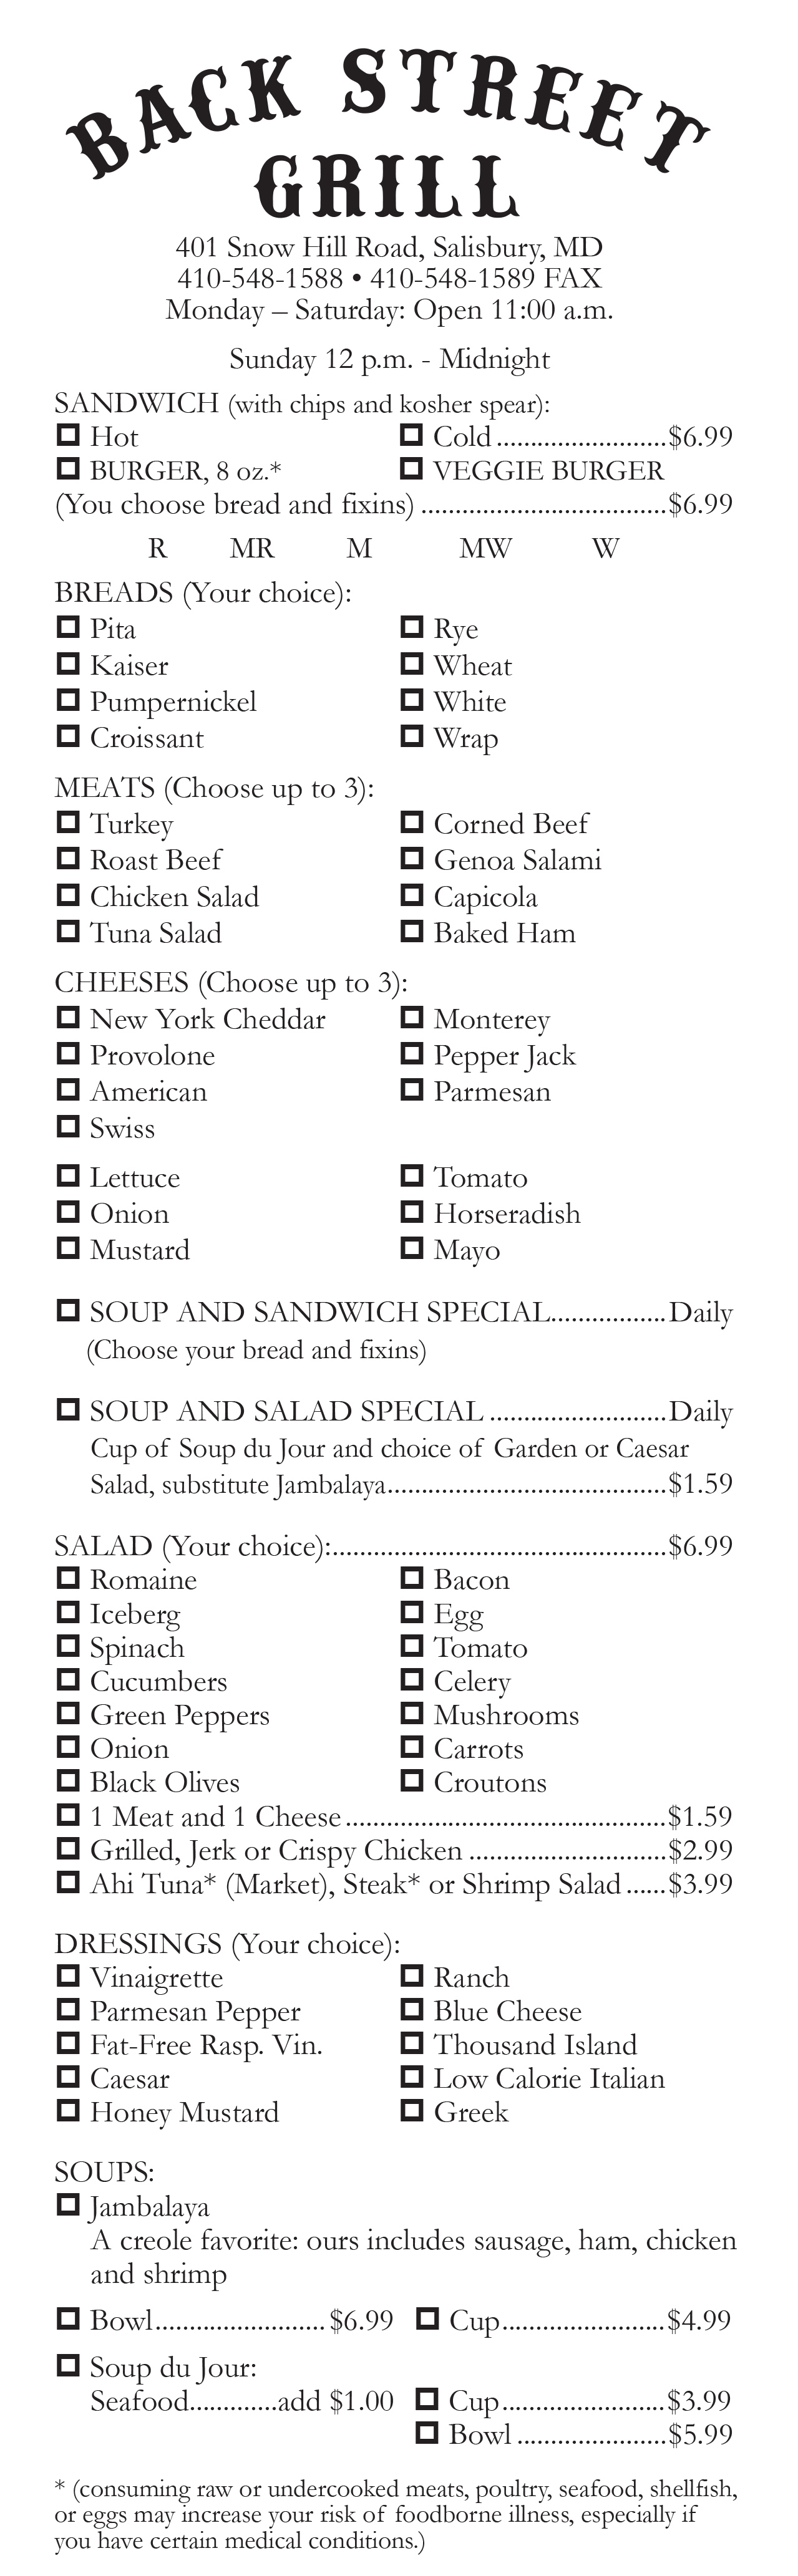 backstreet grill coupons